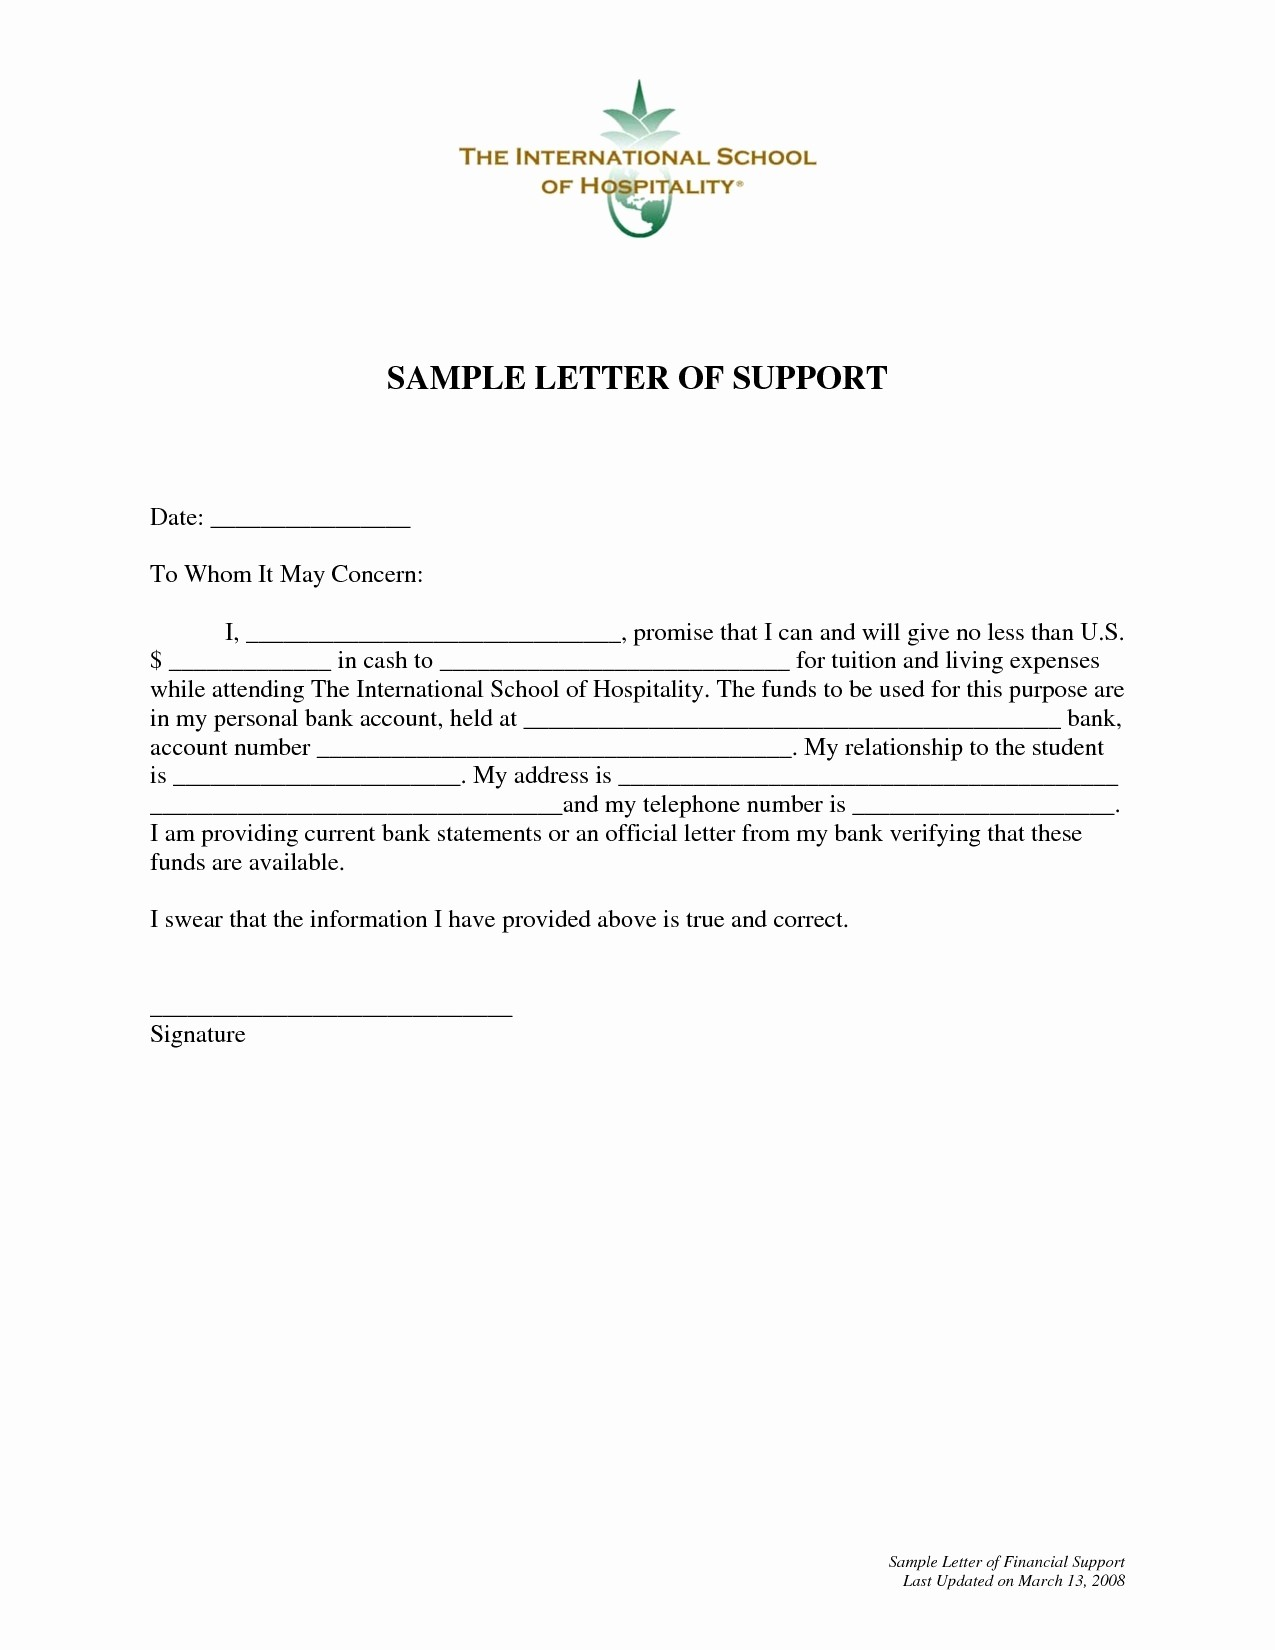 Letter Of Financial Support Template Gdyinglun.com